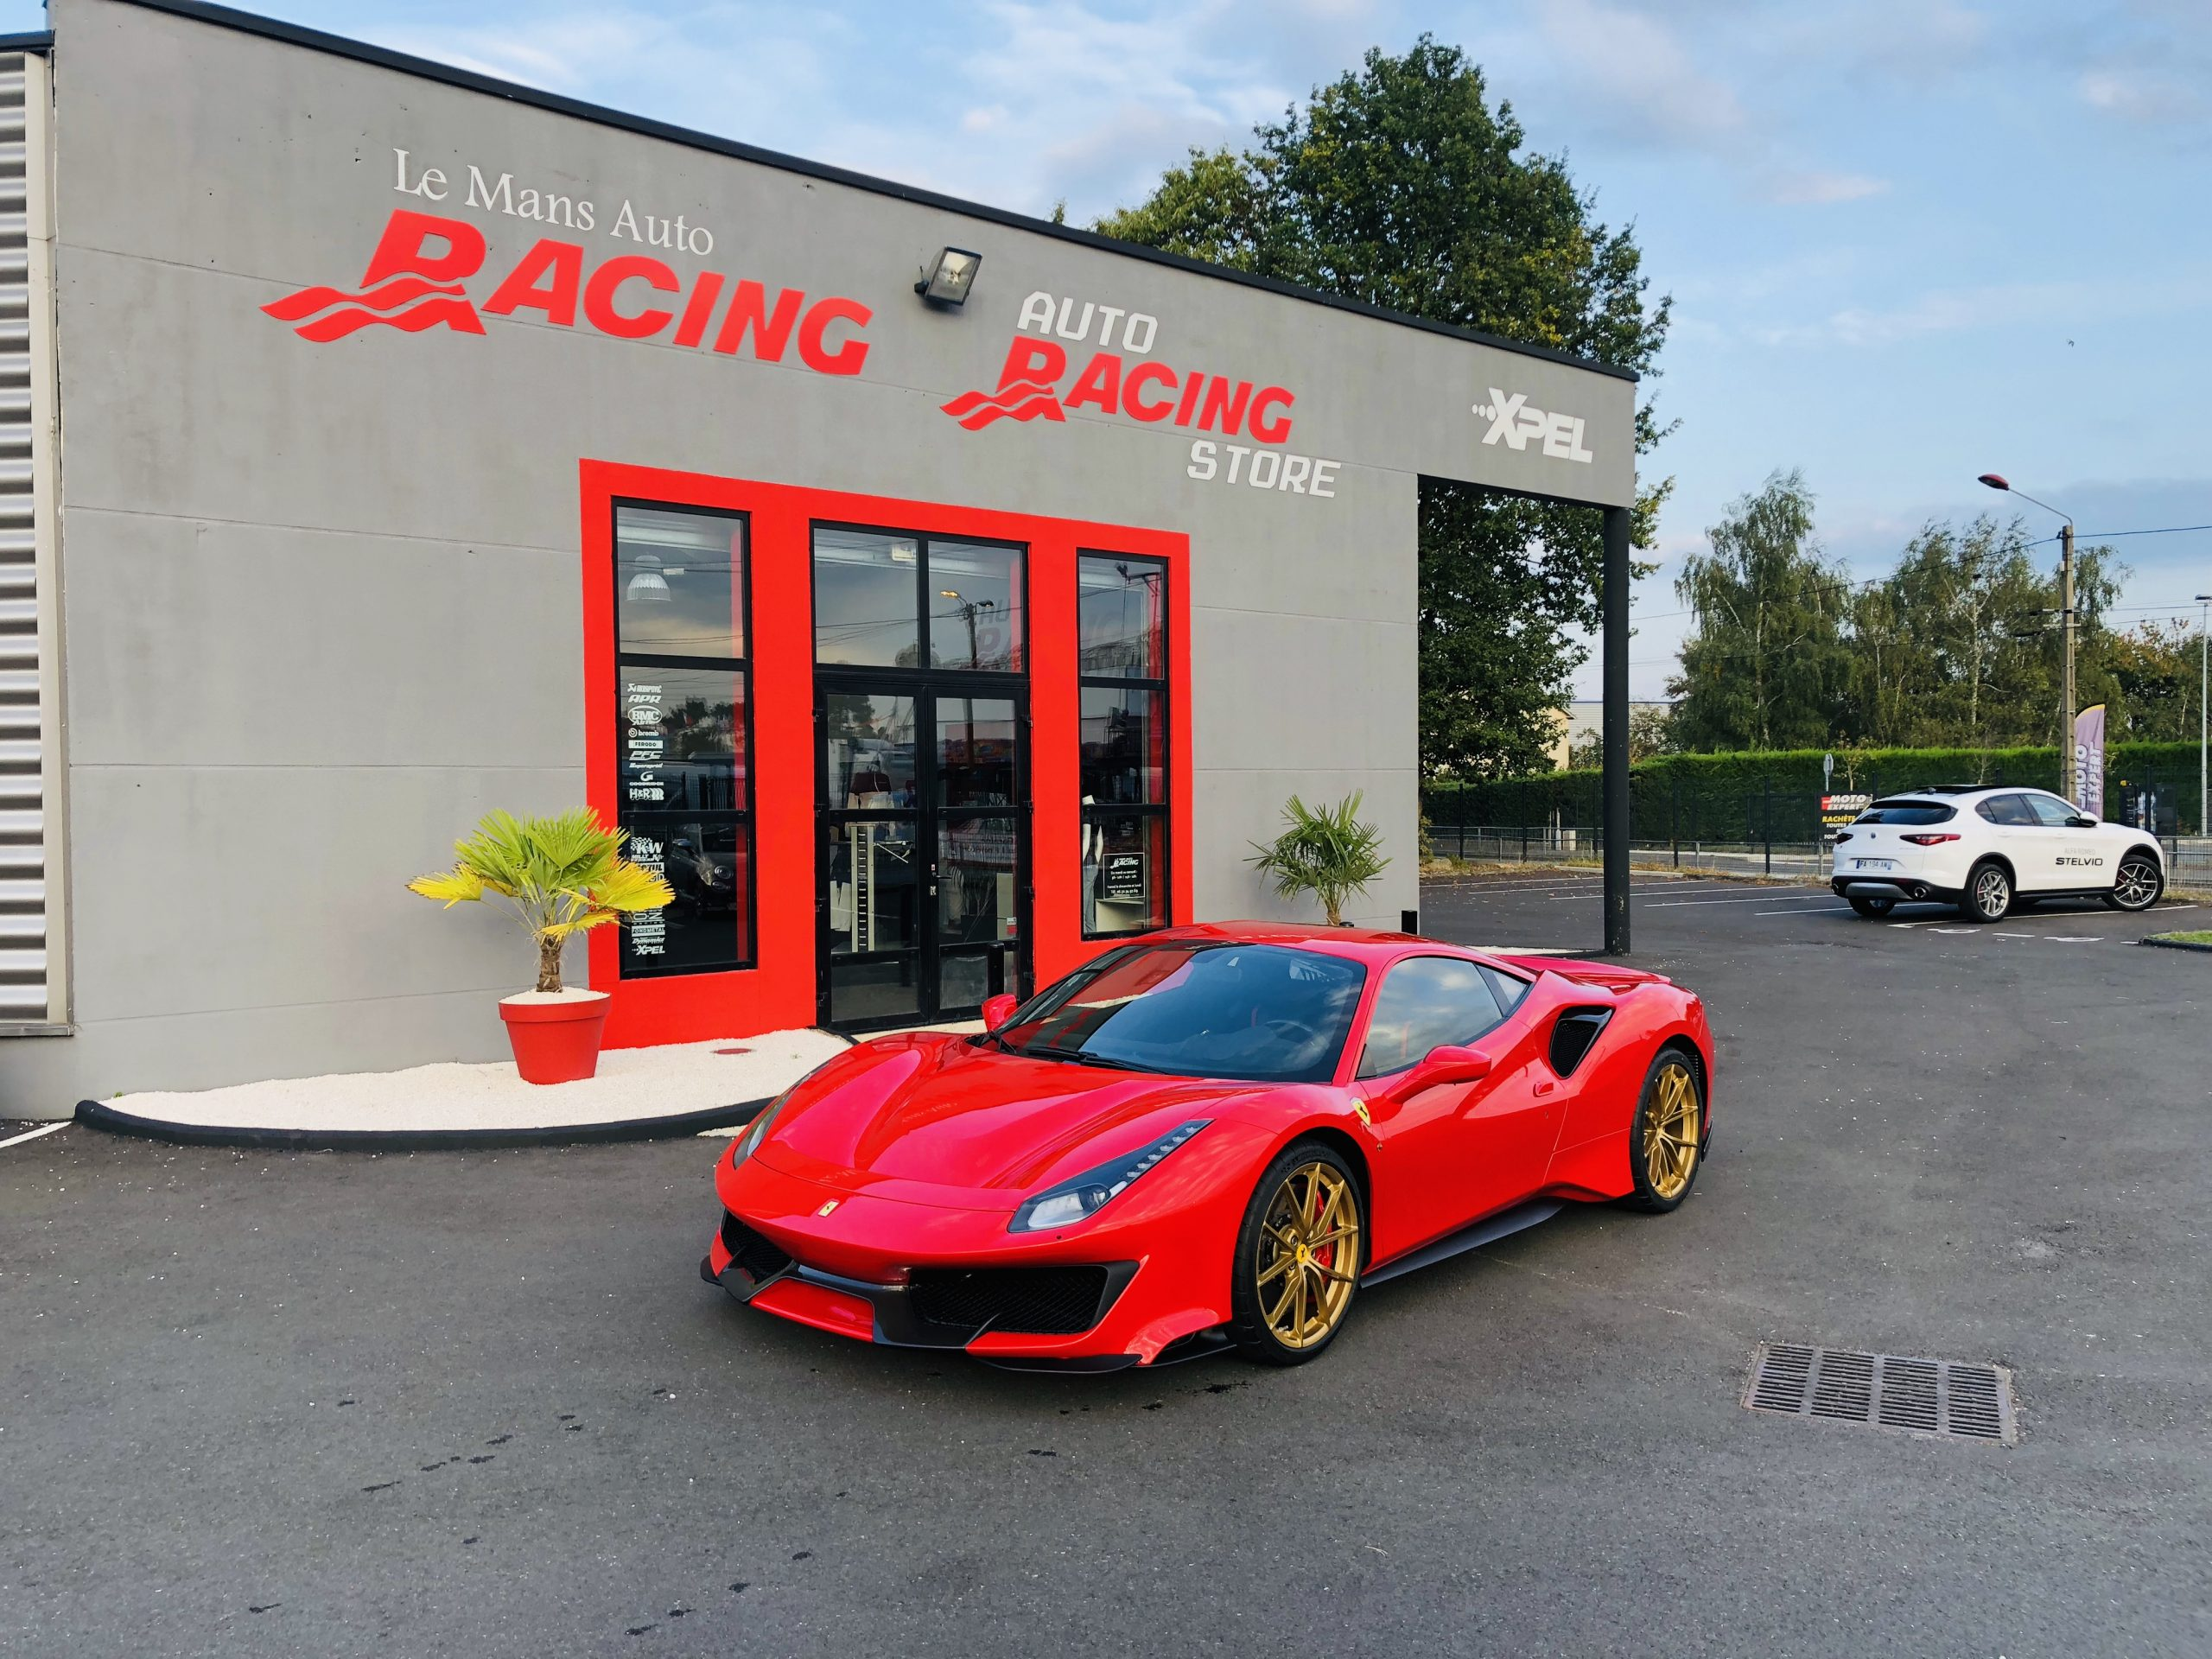 Ferrari 488 Pista Rouge et Or Le Mans Auto Racing